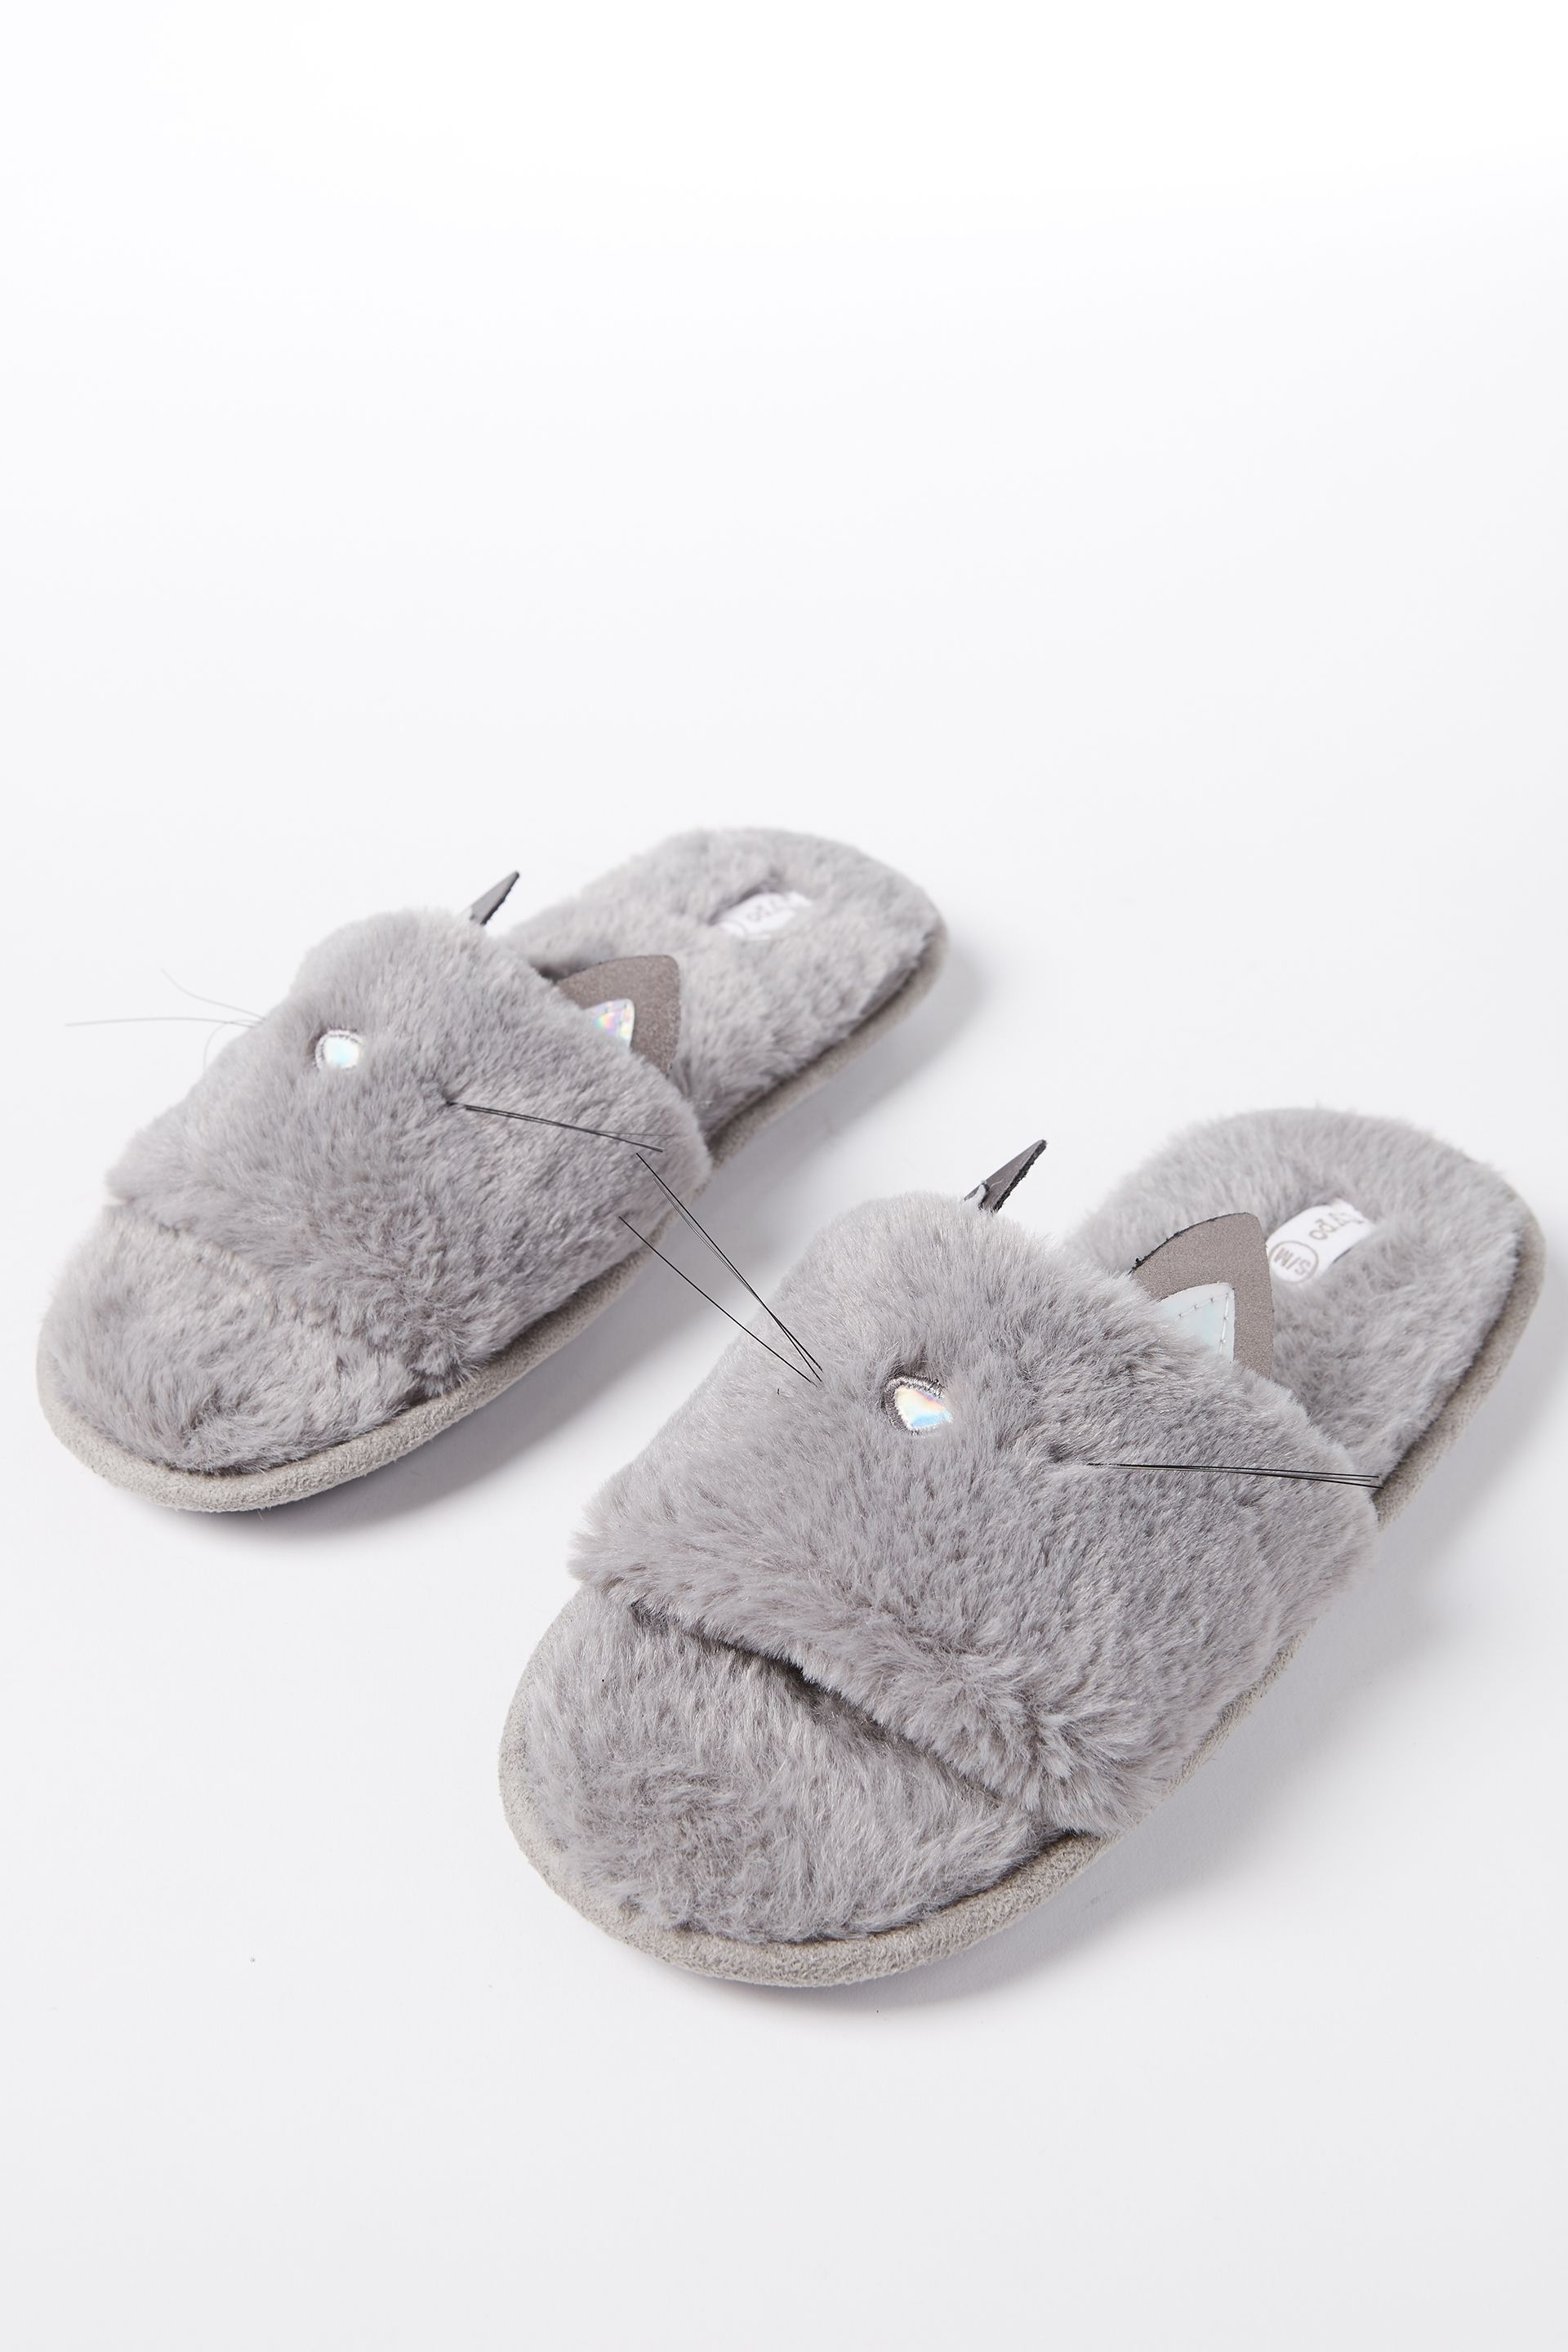 d5dffe6b1e30 Typo  Grey Fur Cat Slippers. Of course not real fur. Or real cat ...